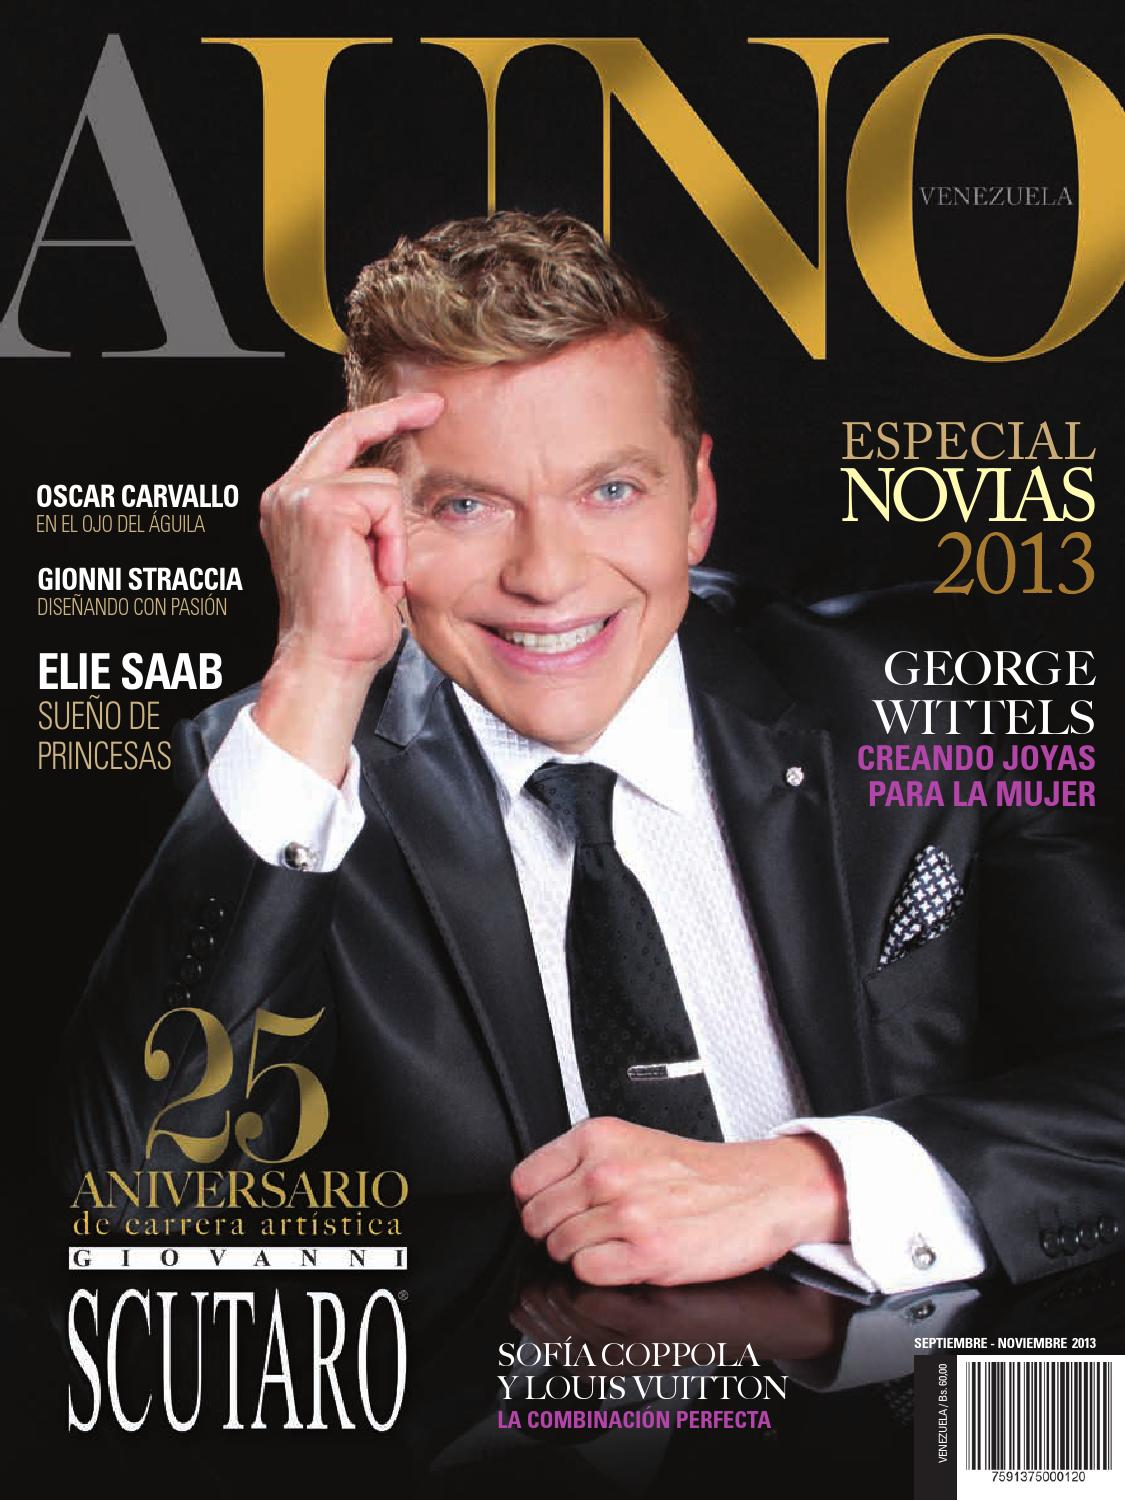 Revista auno 18 baja final by Revista AUNO - issuu bed244dfee4a